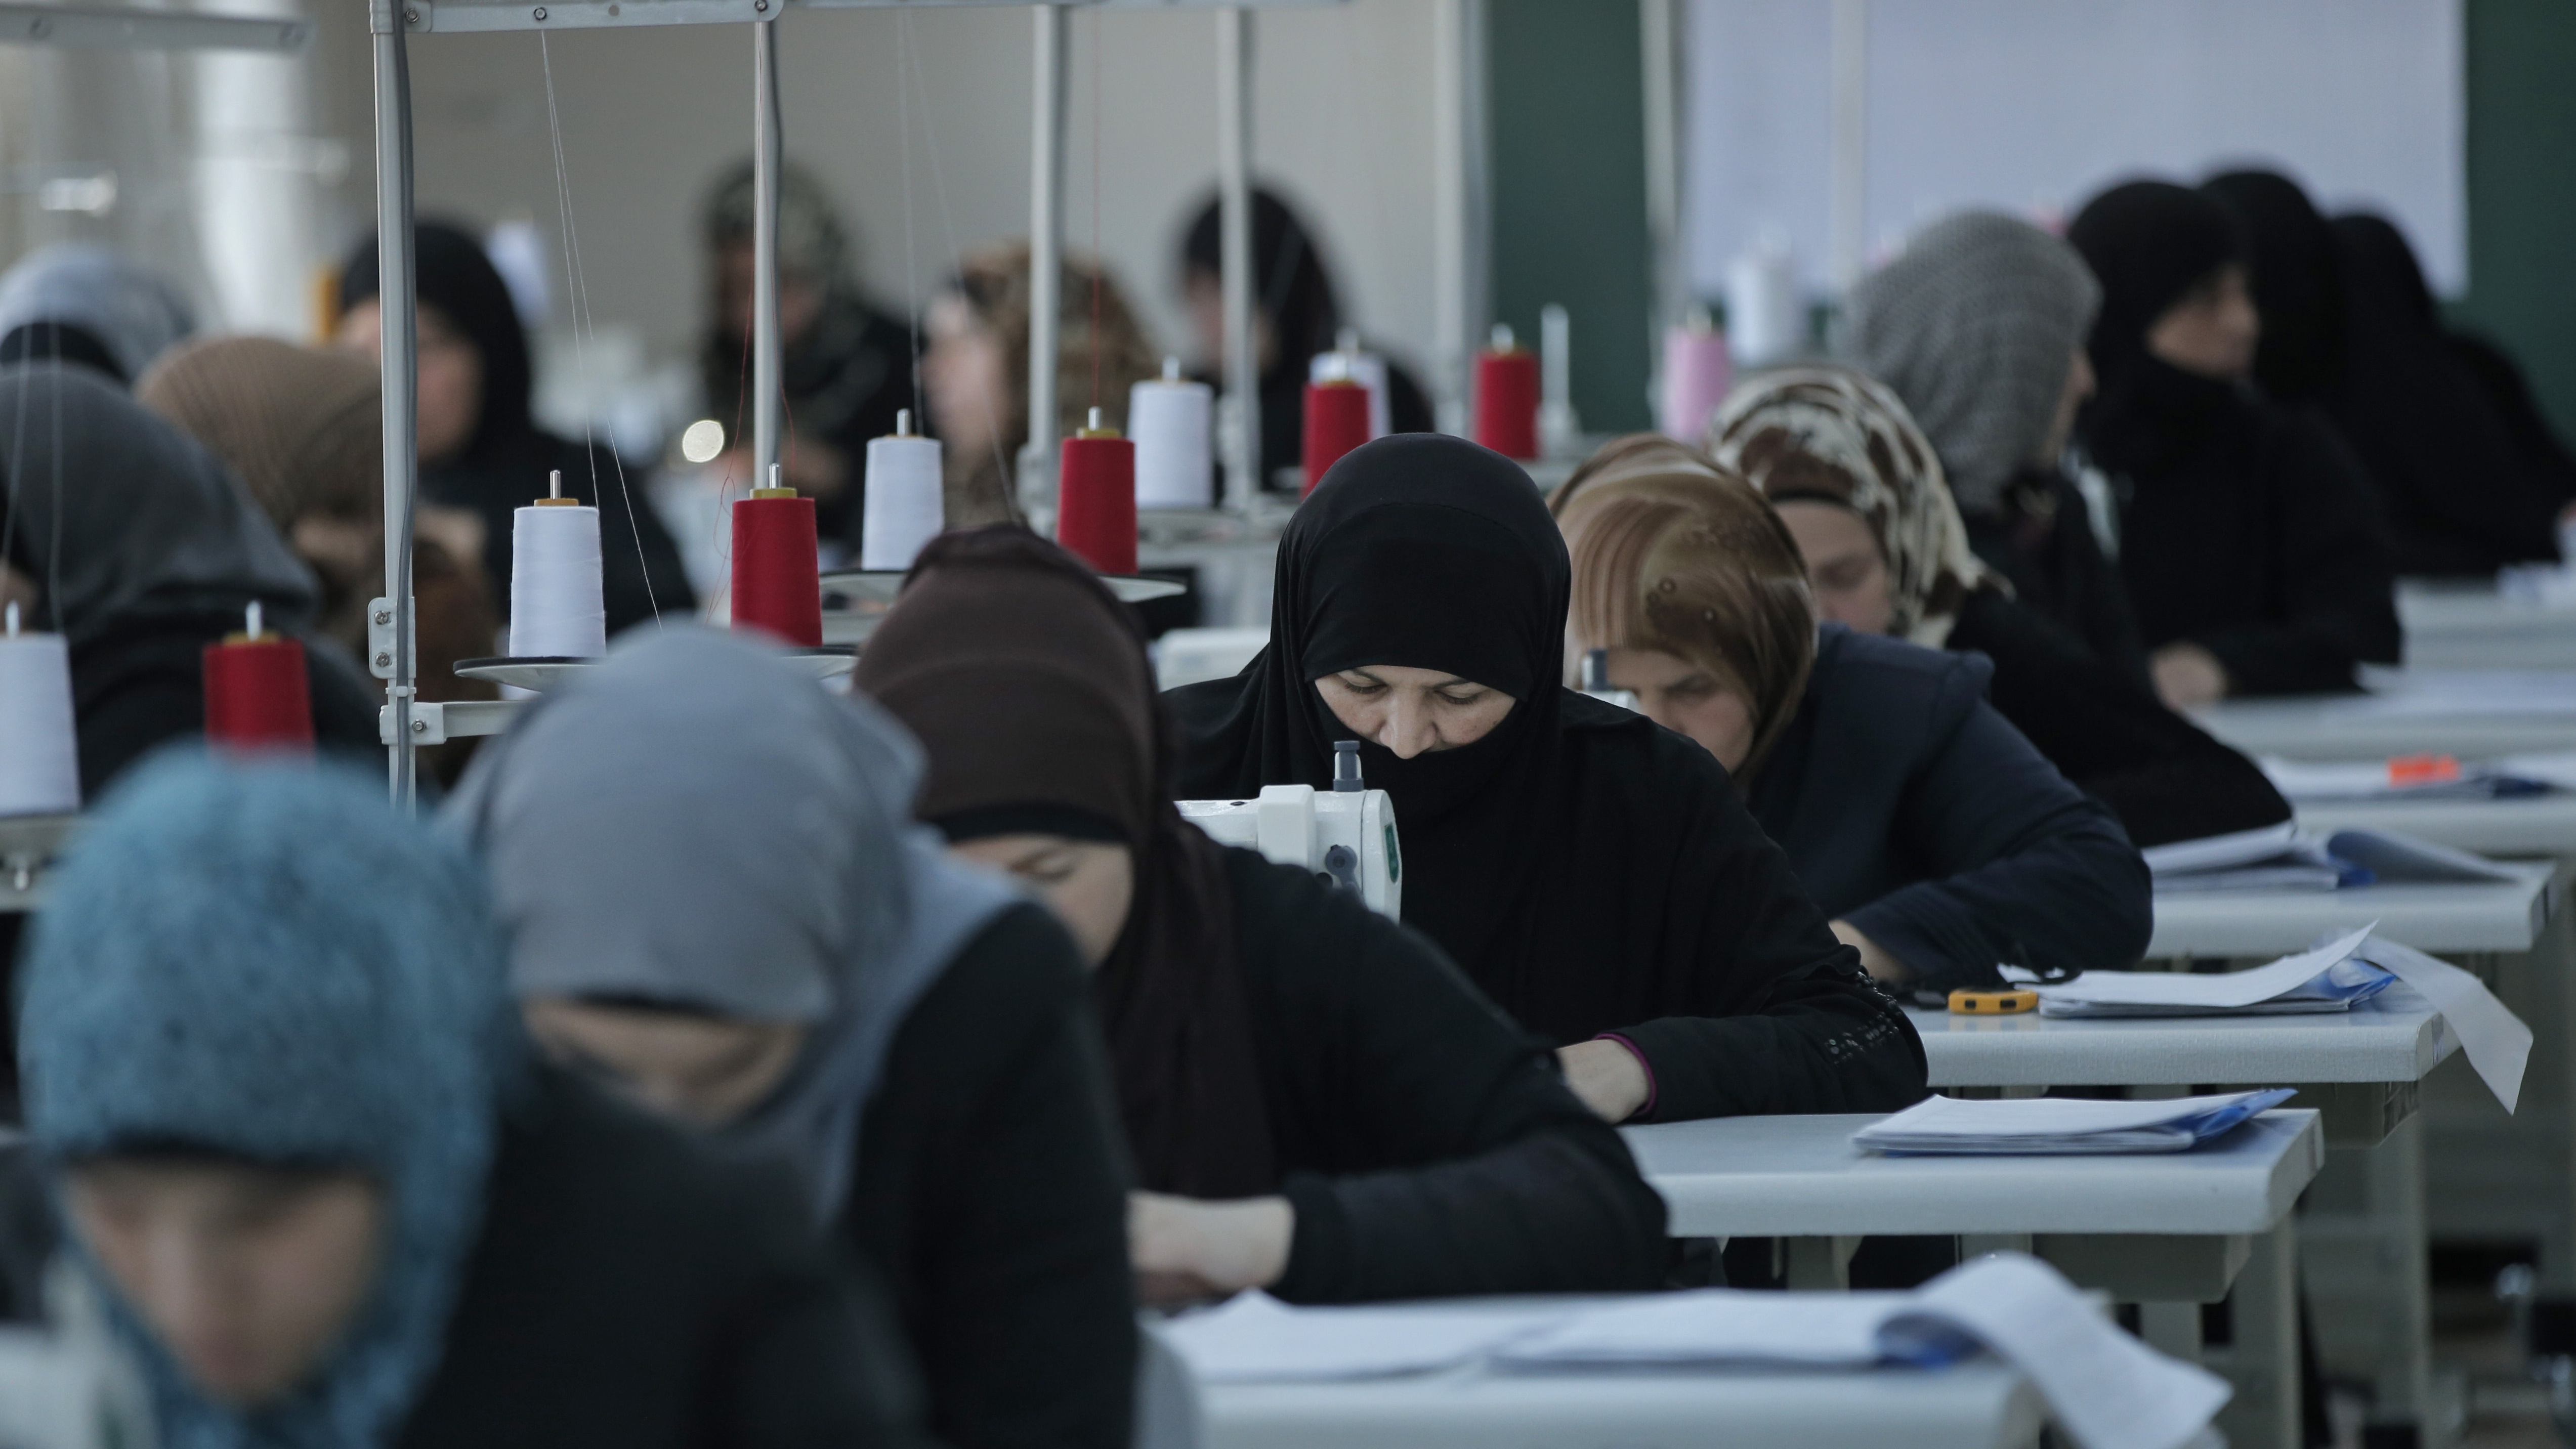 Syrian refugee women train during a sewing workshop at the Oncupinar refugee camp for Syrian refugees next to the border crossing with Syria, near the town of Kilis in southeastern Turkey, Thursday, March 17, 2016.